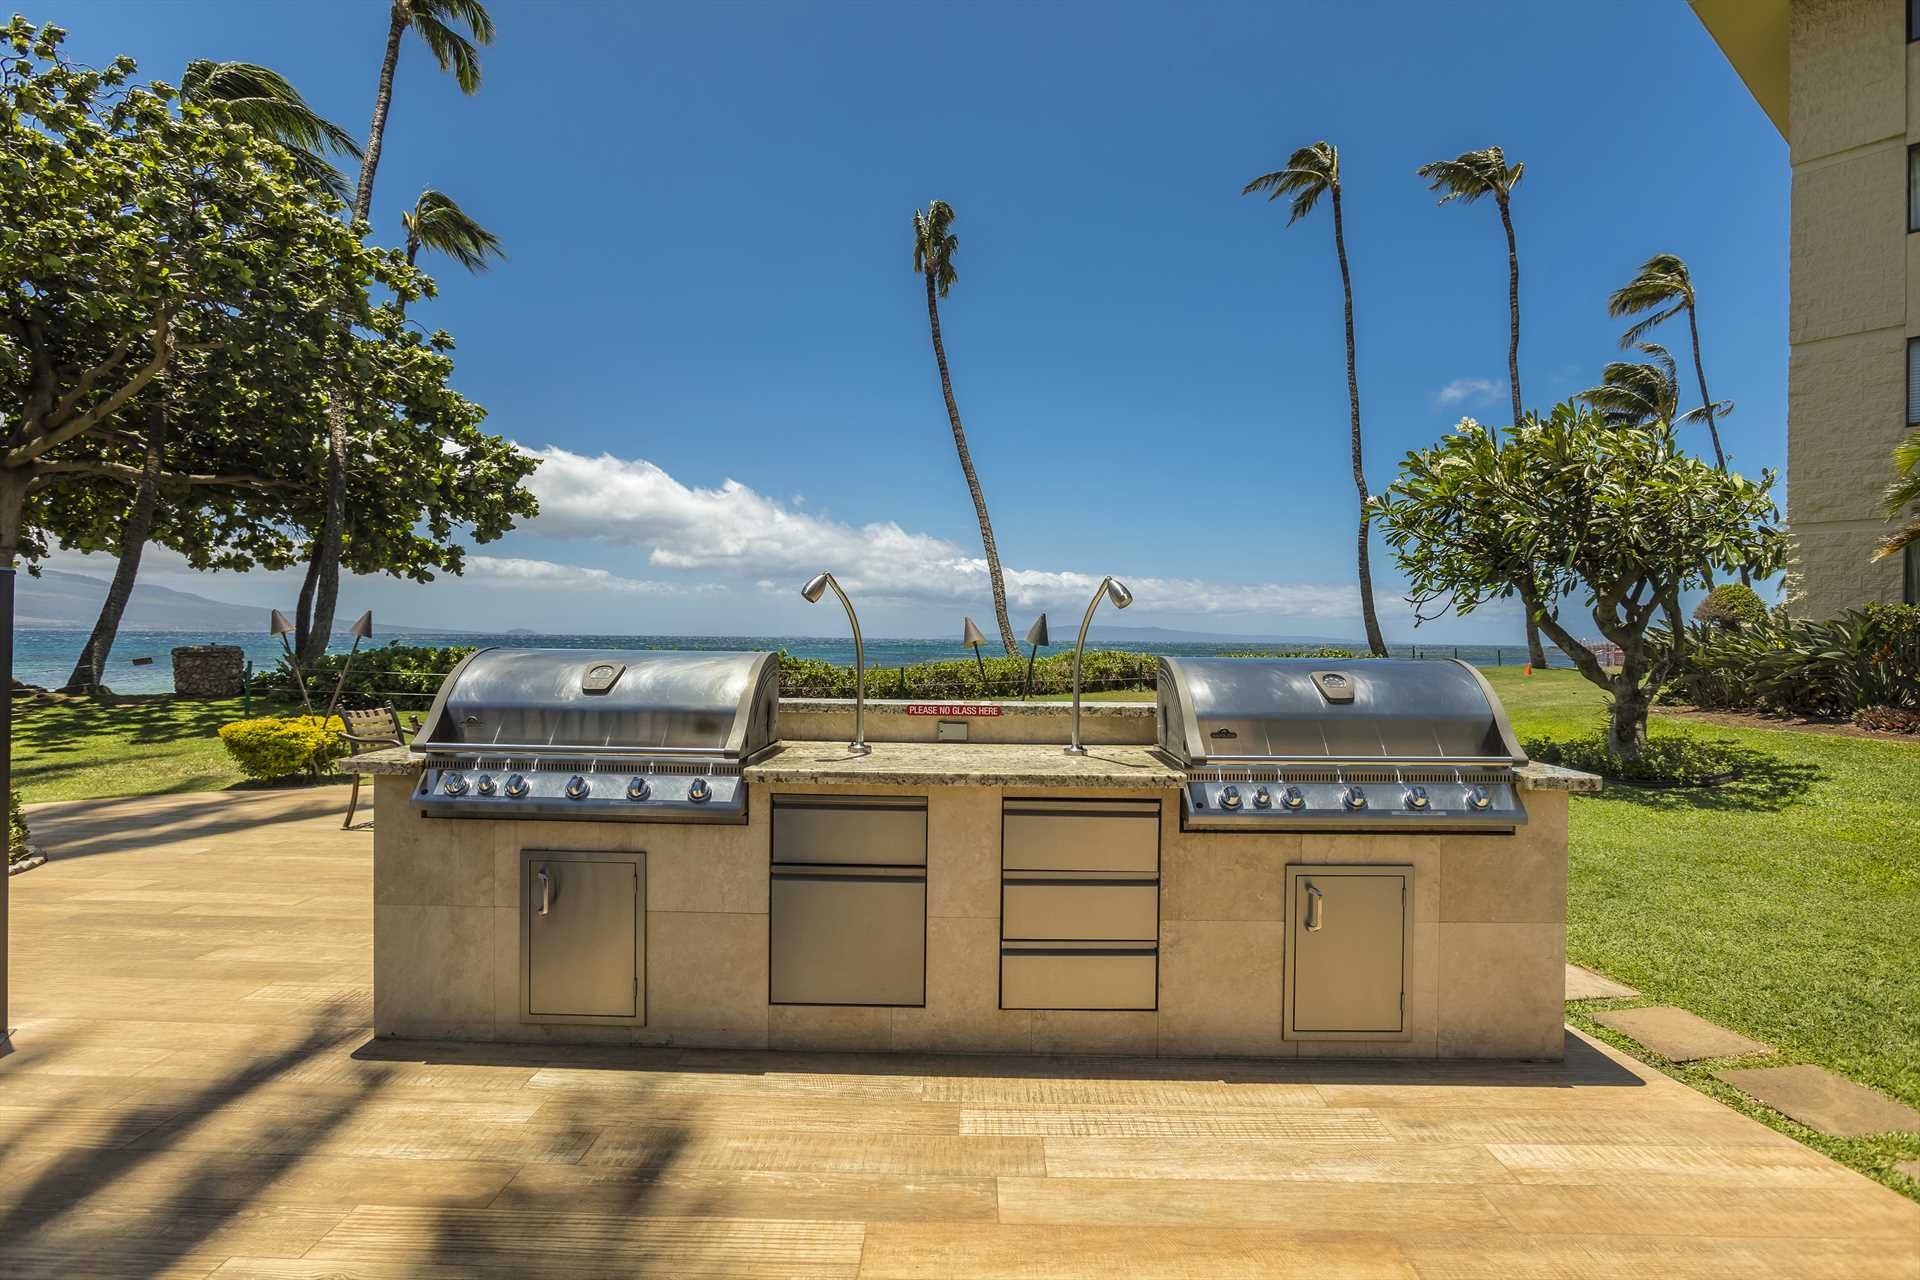 BBQ area to enjoy outdoor oceanfront grilling for some of yo